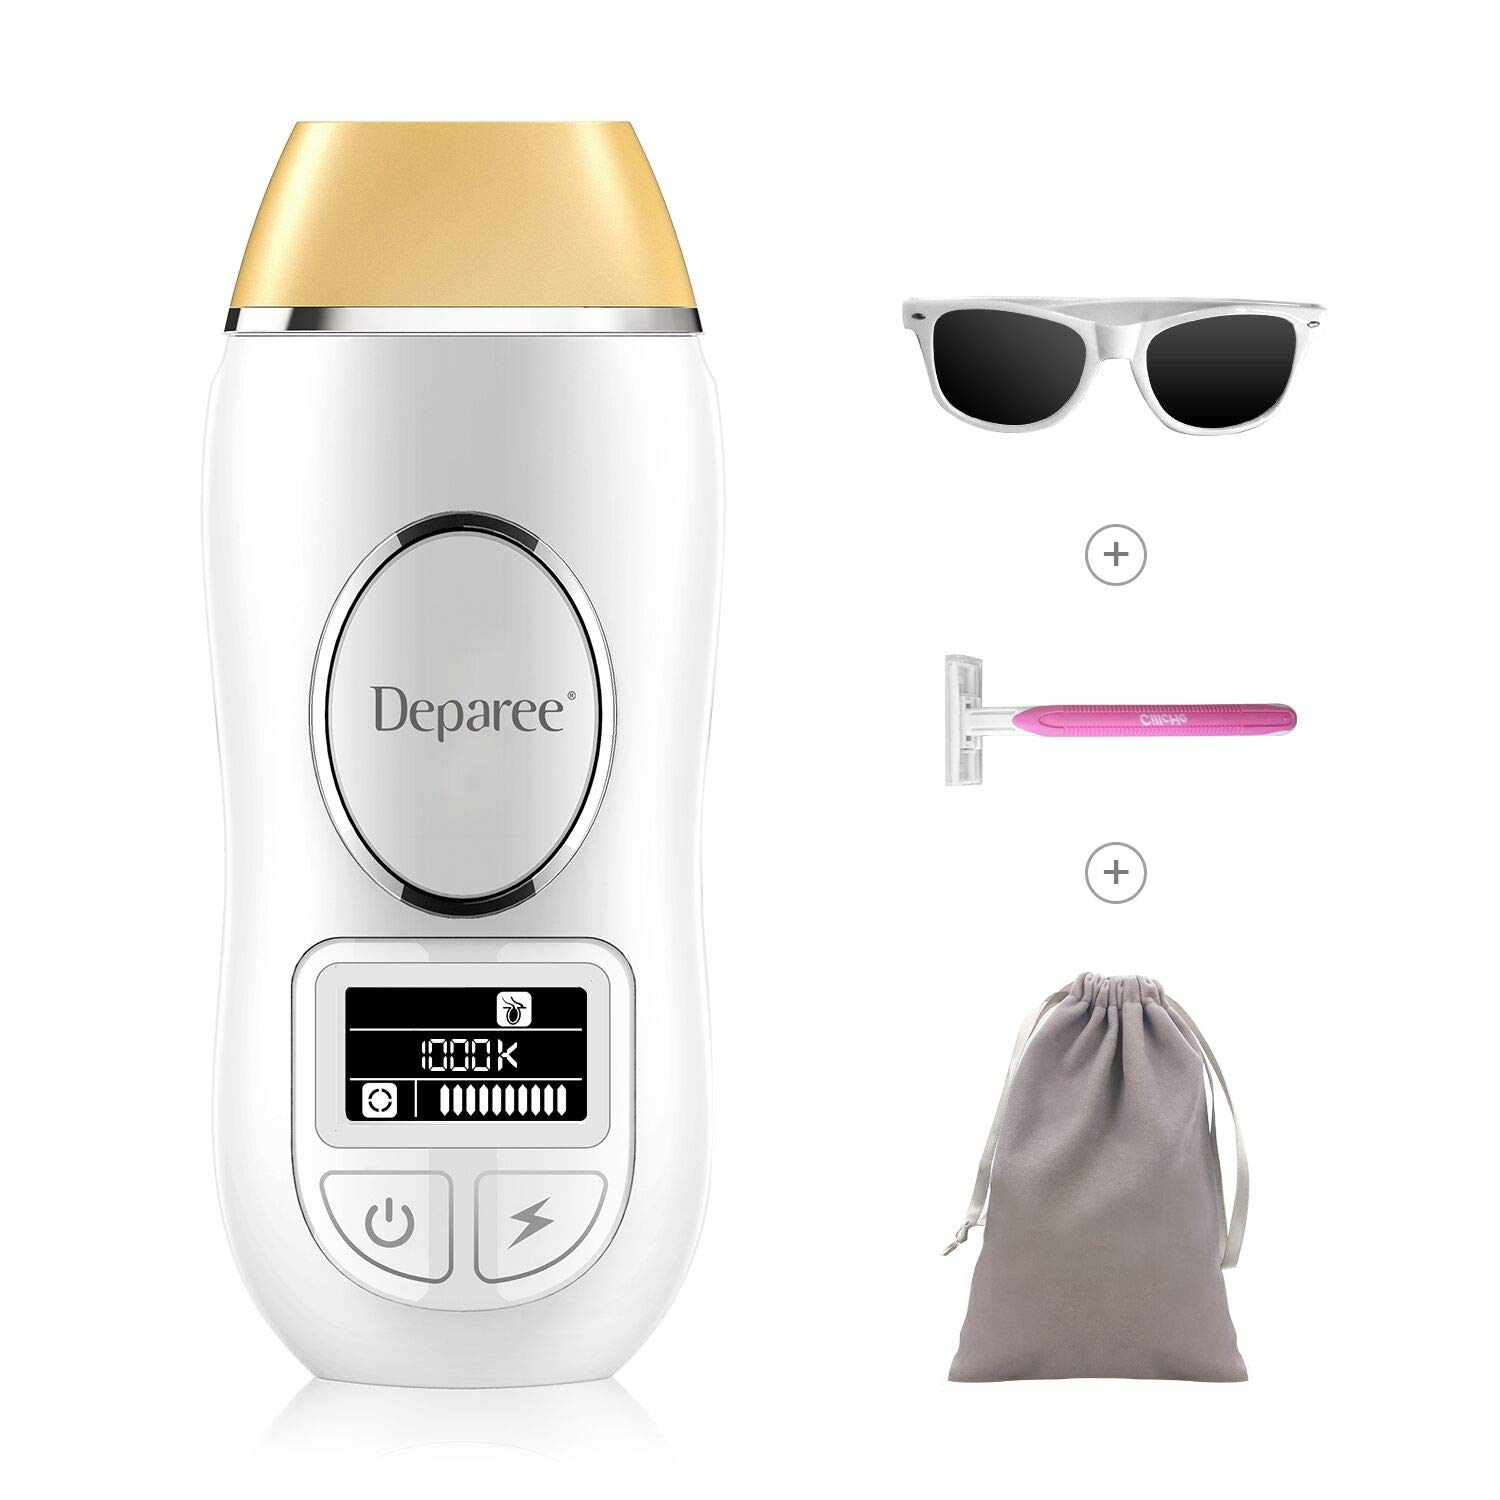 Hair Removal for Women and Men, Deparee IPL Permanent Hair Removal with 1000000 Flashes and Replaceable Lamp Head, Facial Body Professional Painless Hair Remover Device Home Use (Upgrade Version)